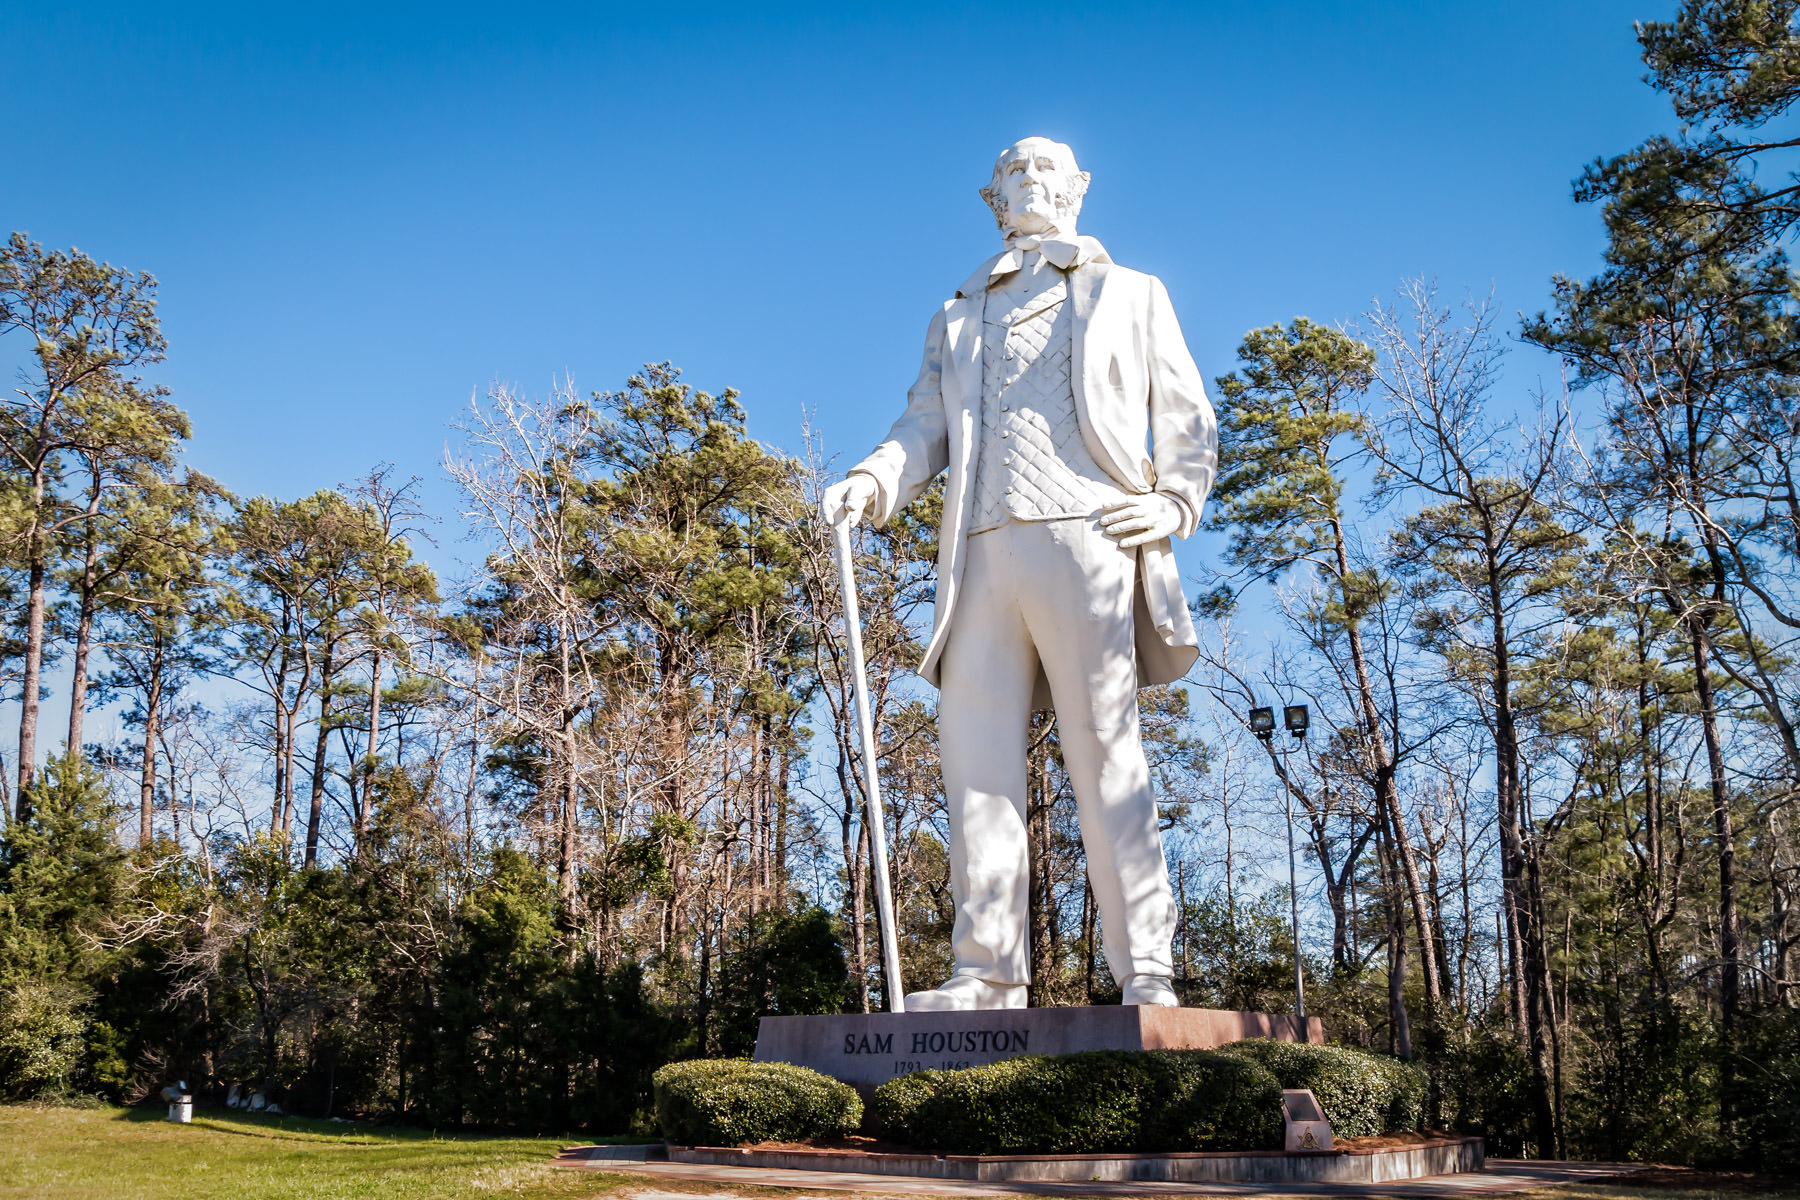 This 67-foot-tall statue of the first (and third) President of the Republic of Texas, Sam Houston, rises into the sky in Huntsville.